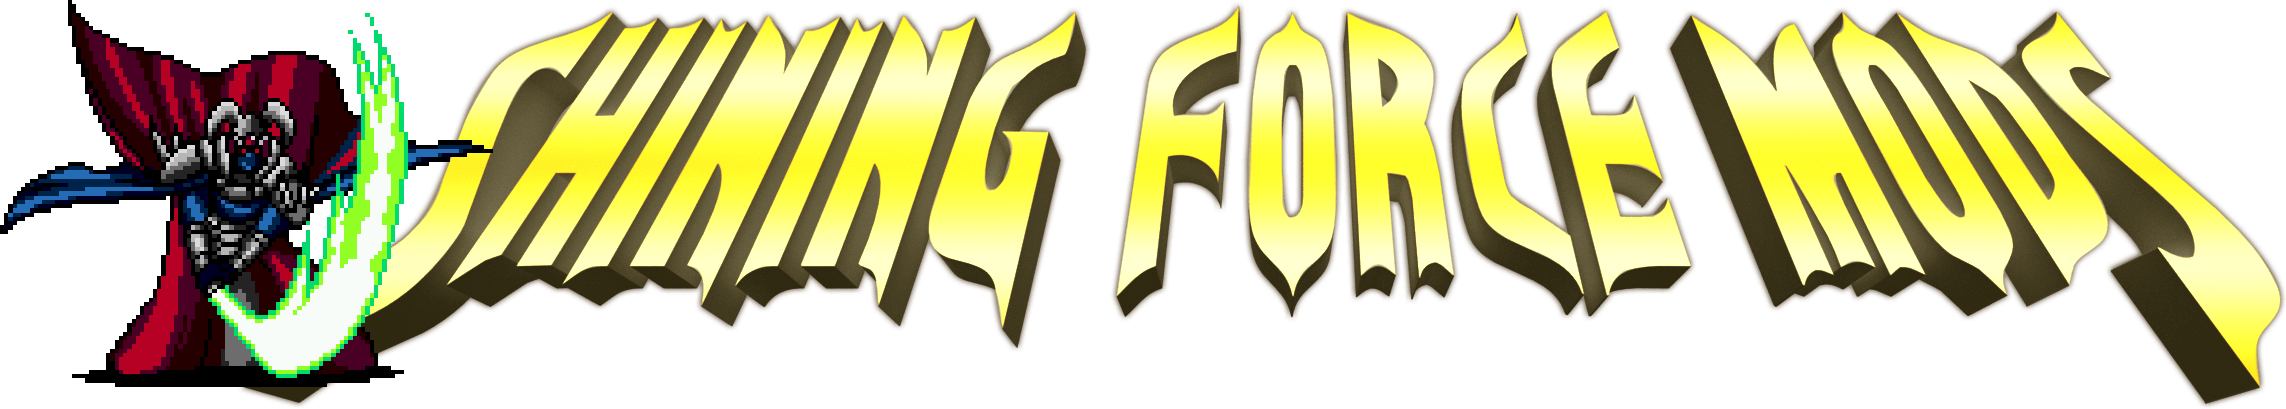 Shining Force Mods Community logo